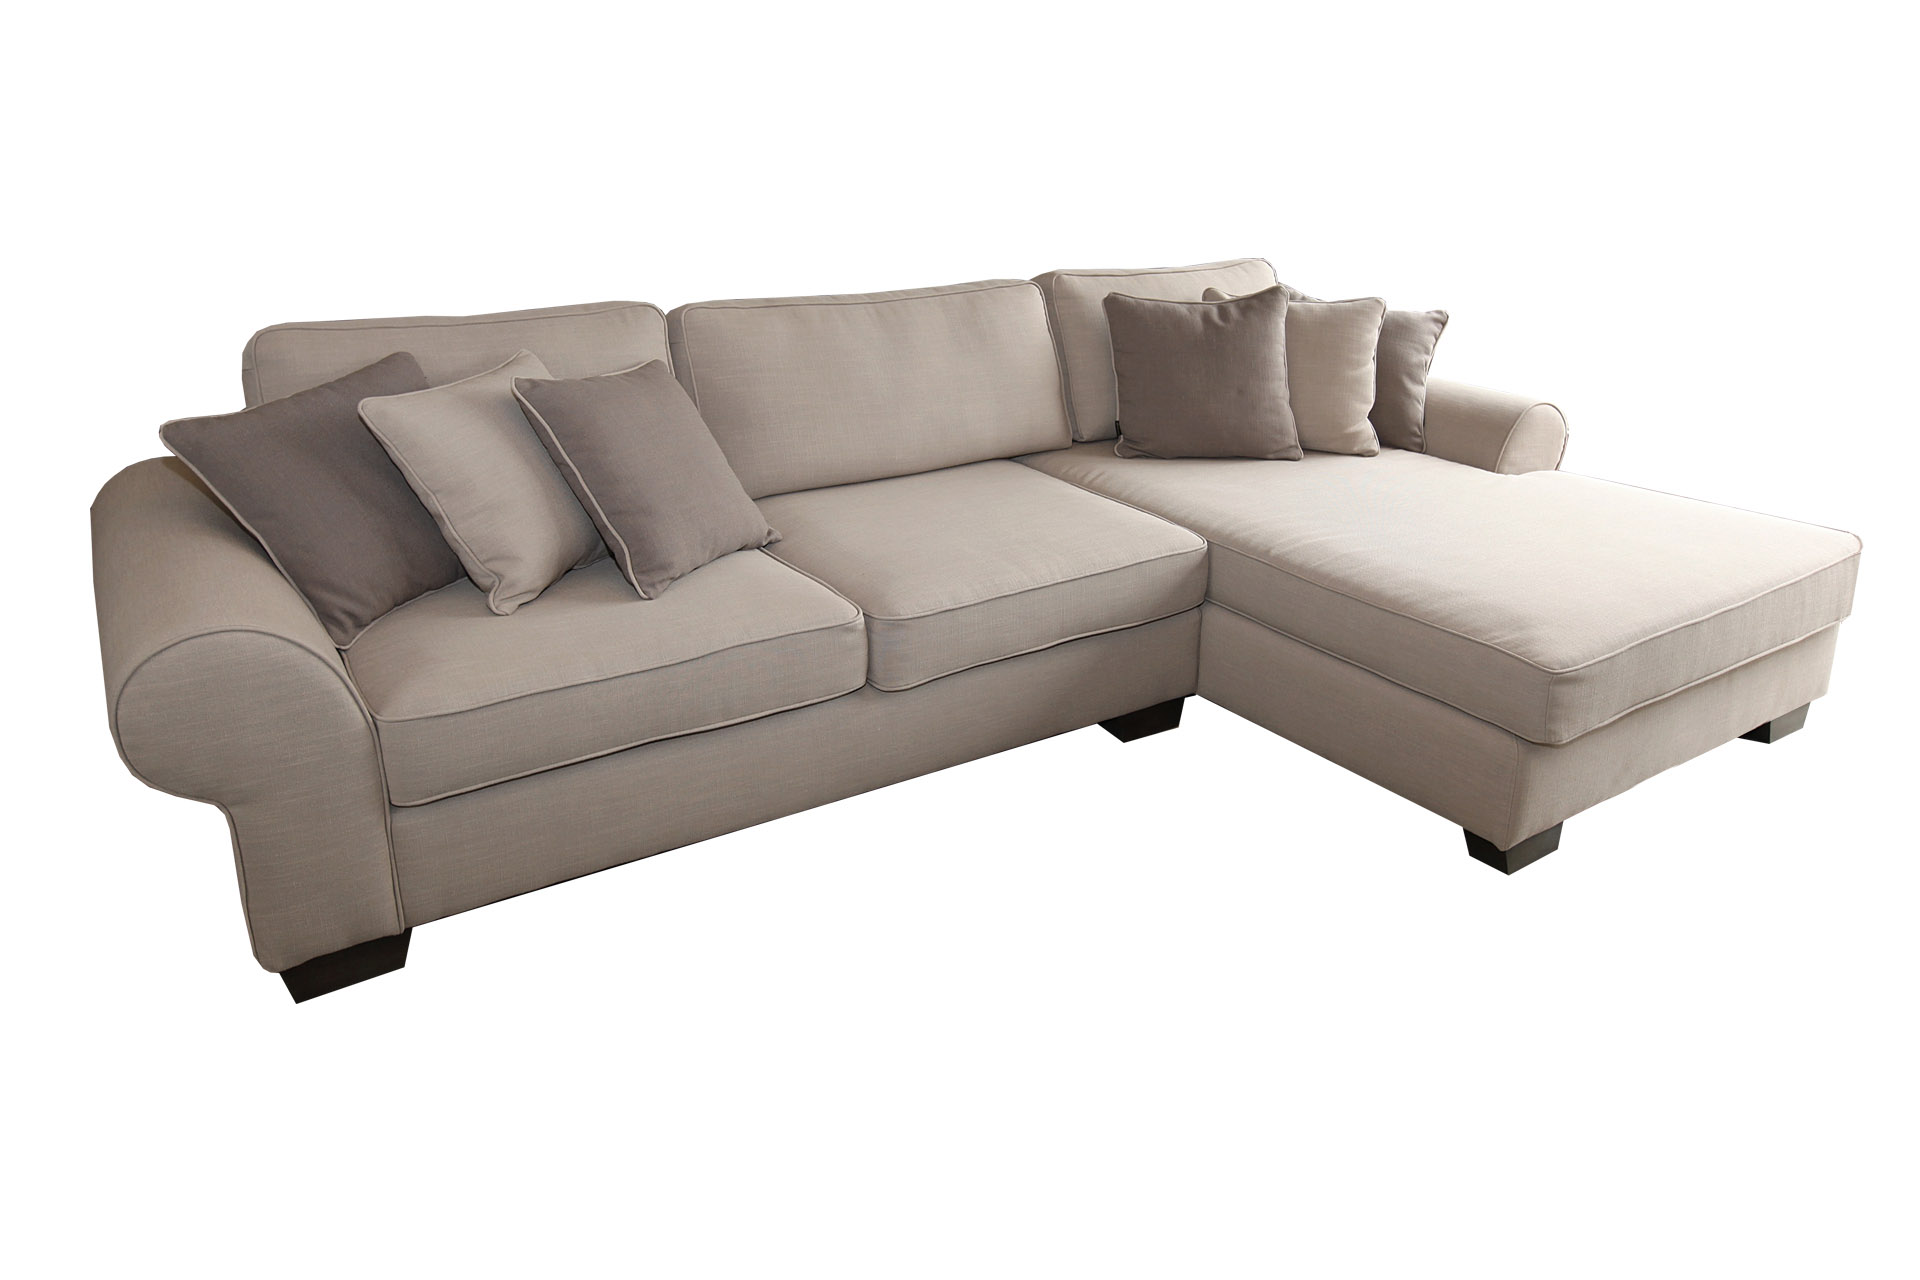 Canap modulair melina marcottestyle - Sofa hedendaagse ...